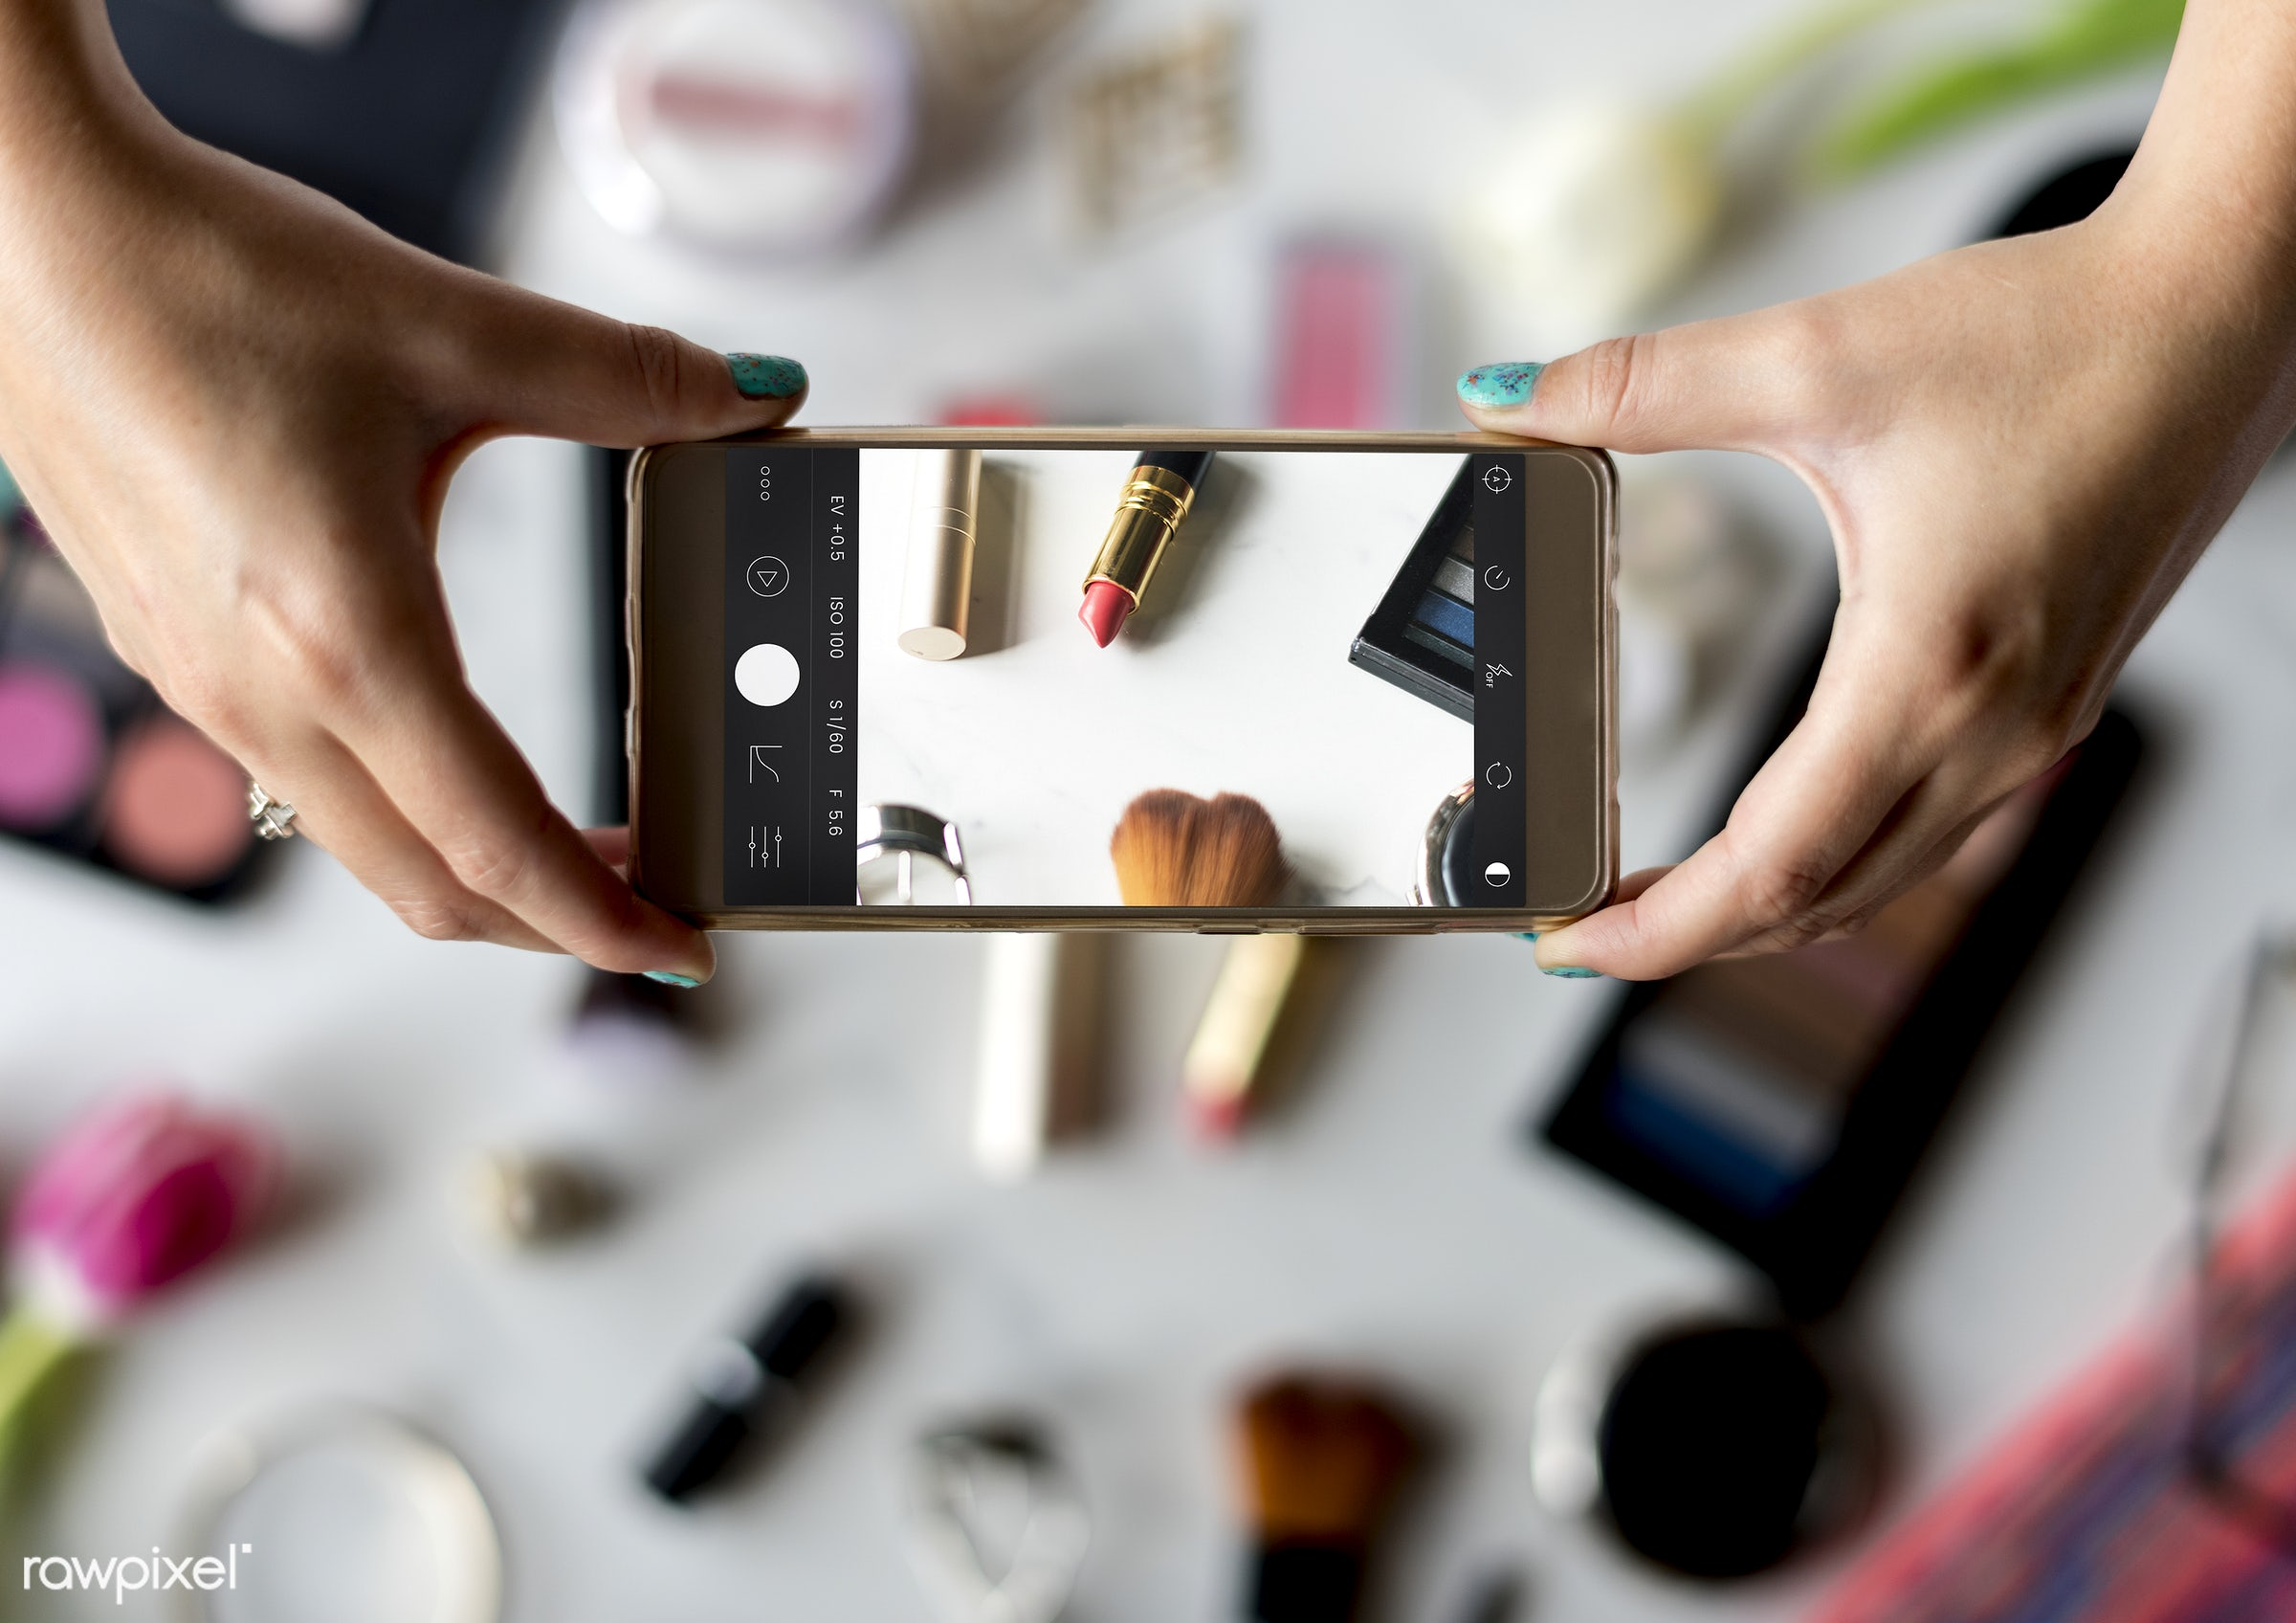 makeup, cosmetic, product, accessories, adult, apply, attach, attached, beautiful, beauty, capture, care, cellphone,...